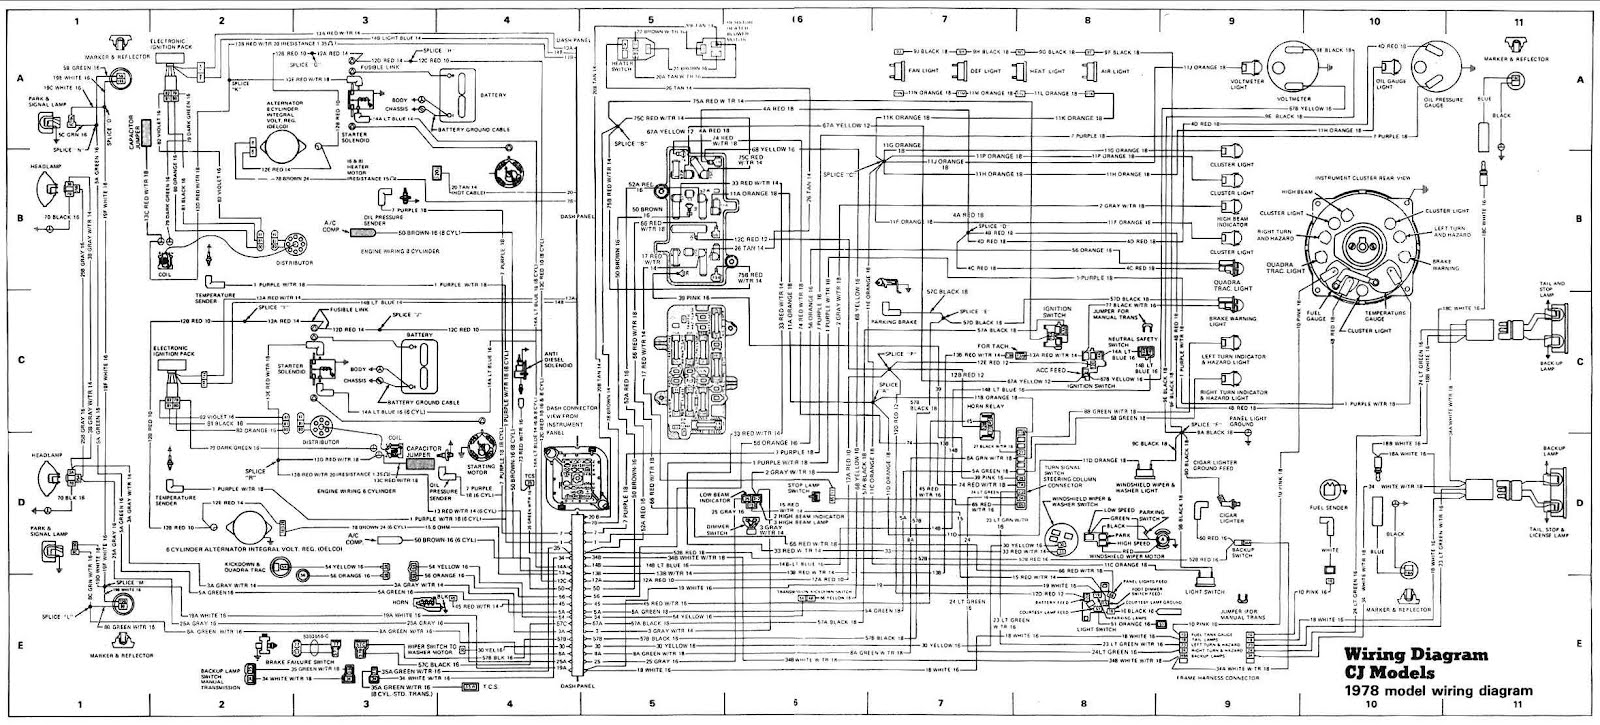 Bmw E46 Fuse Diagram Pdf Wire Harness Sensors John Deere Lt 155 ...